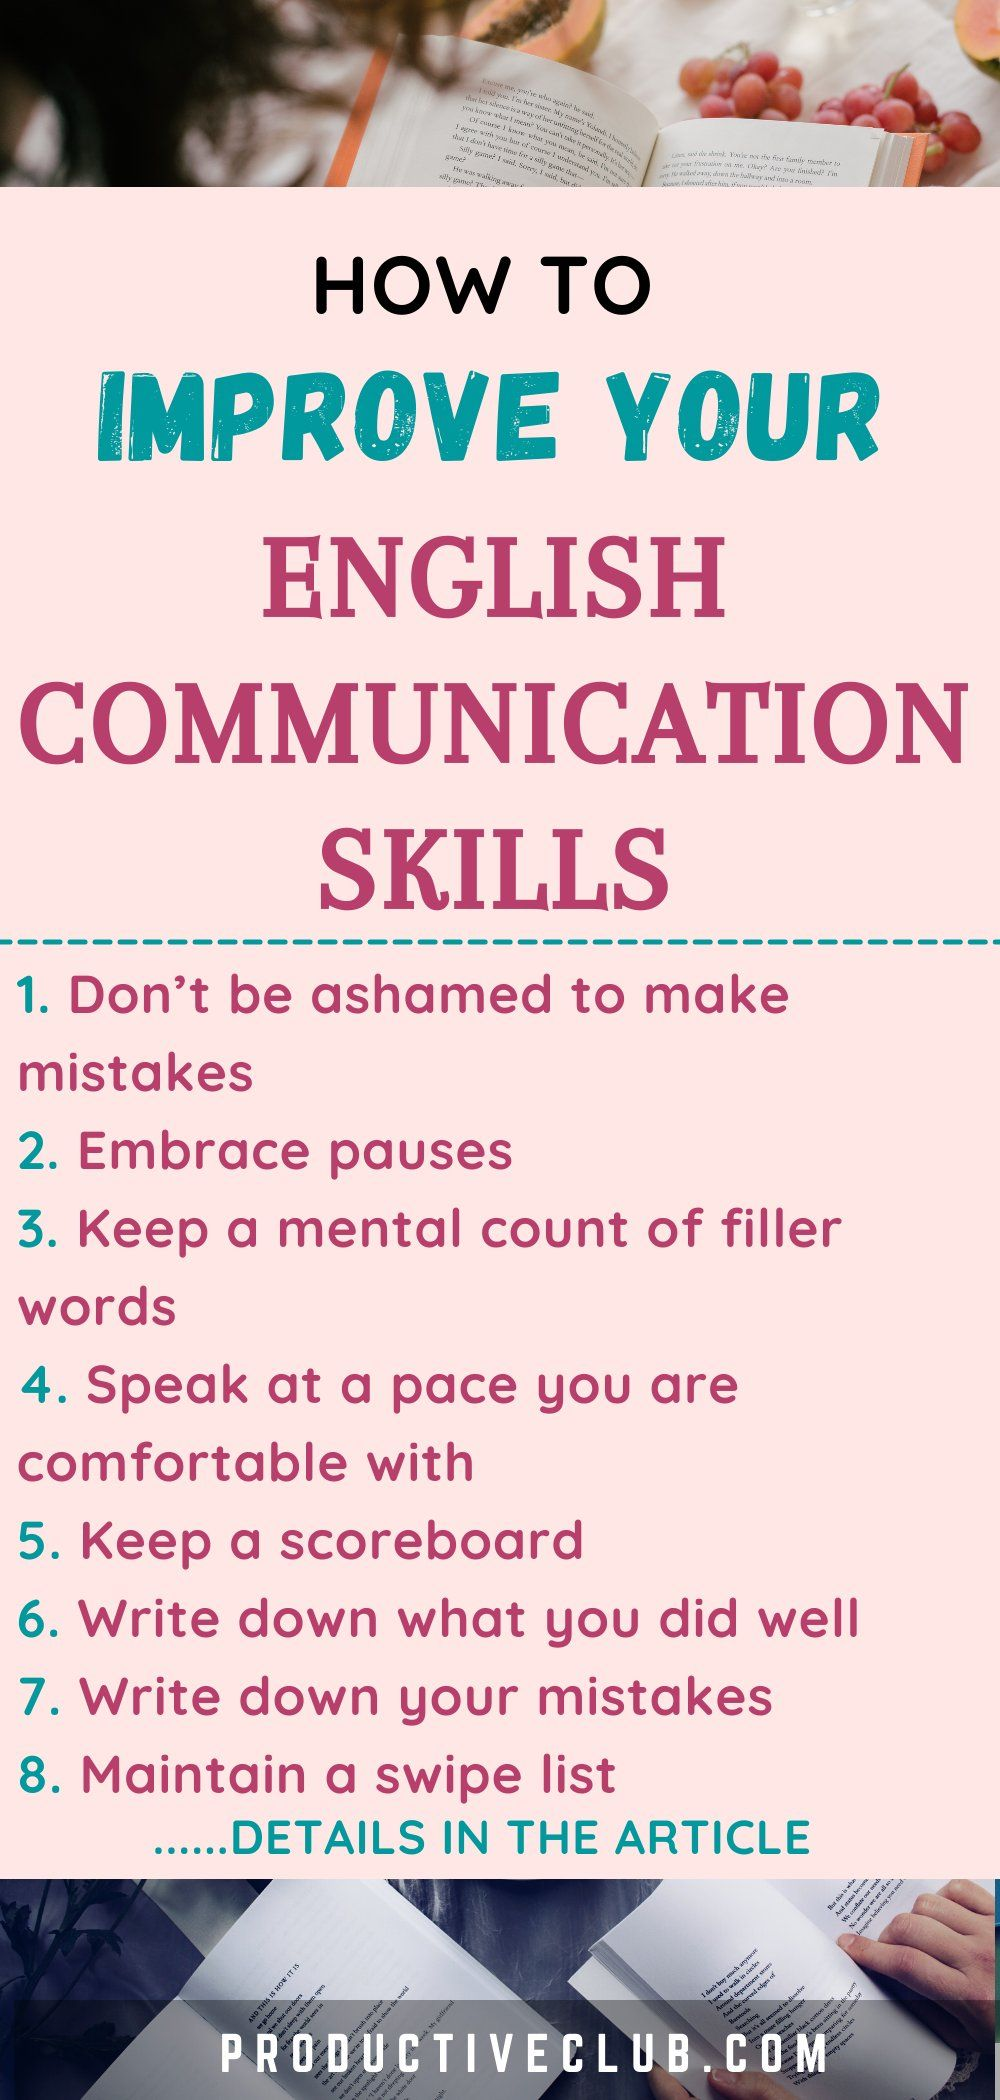 How To Improve Your English Communication Skills Self Improvement In 2021 English Communication Skills Communication Skills English Speaking Skills